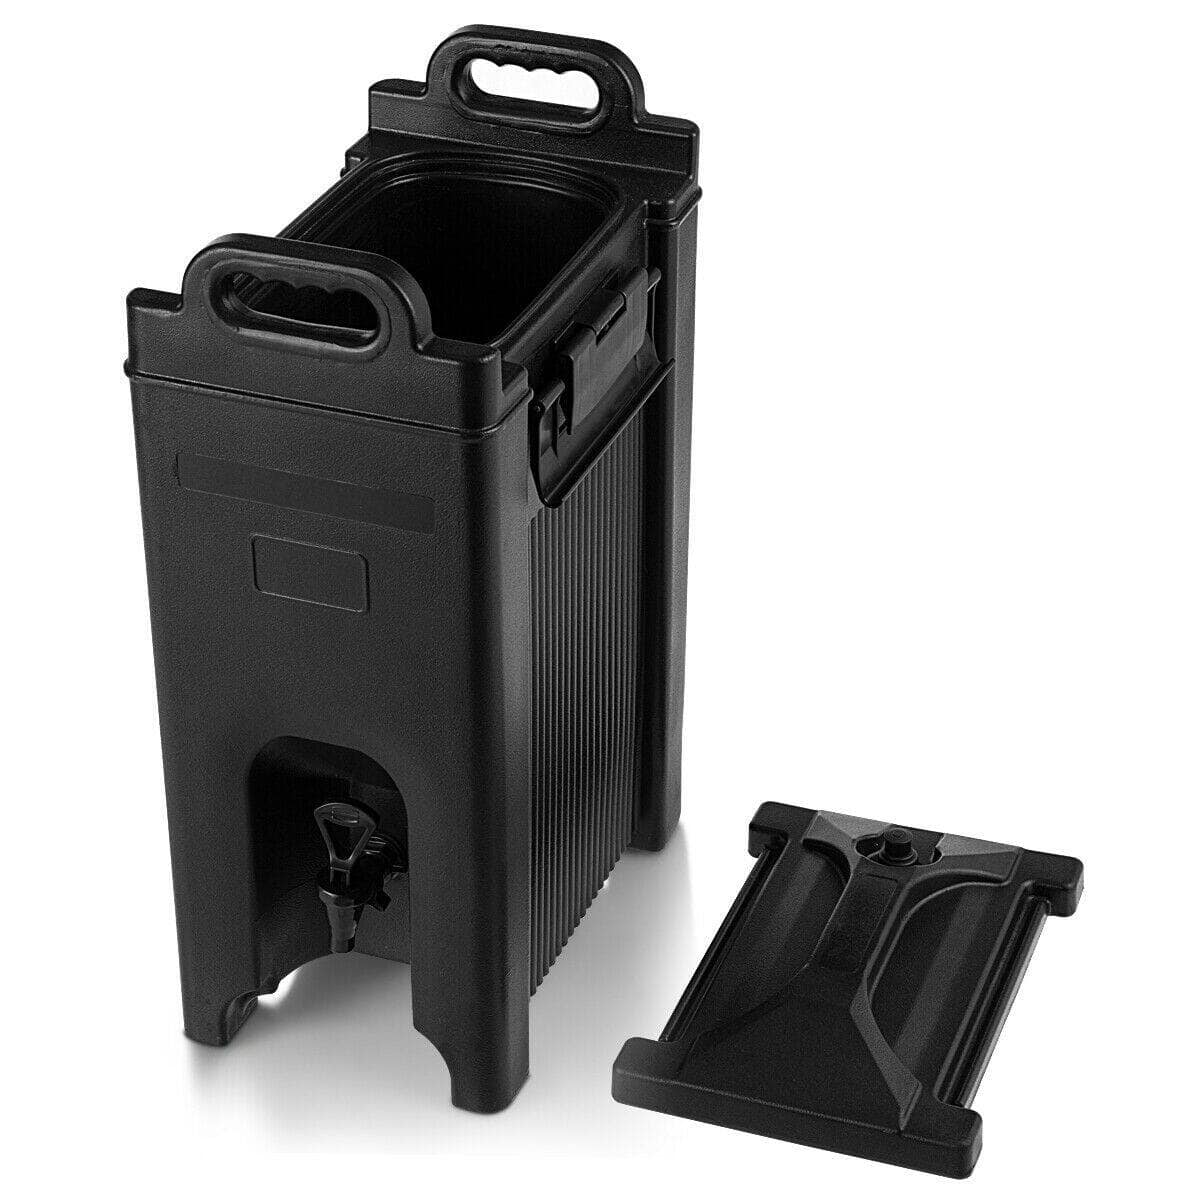 Costway 5-Gallon Insulated Beverage Dispenser $84.95 + Free Shipping